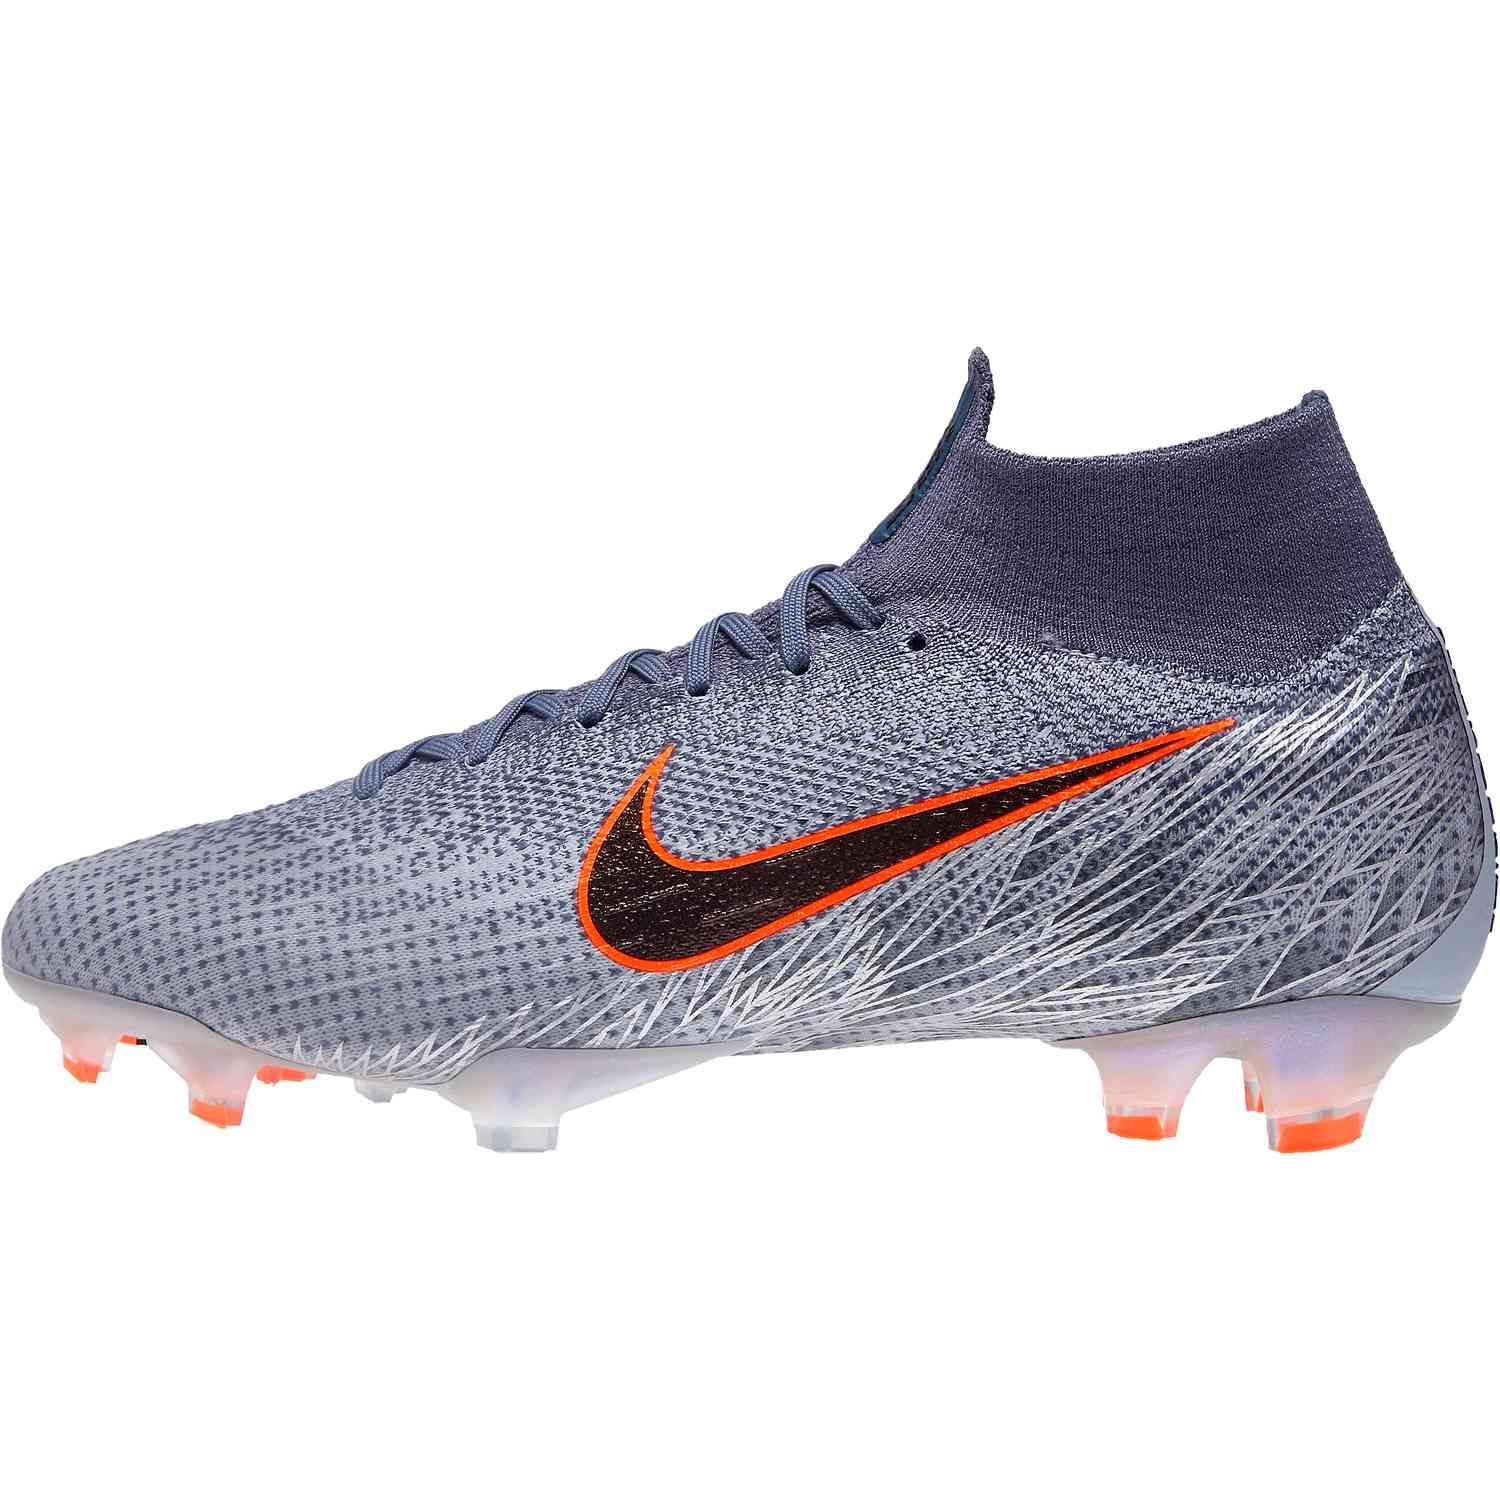 77a32e6bb0d68 Nike Mercurial Superfly 6 Elite FG - Victory Pack - SoccerPro